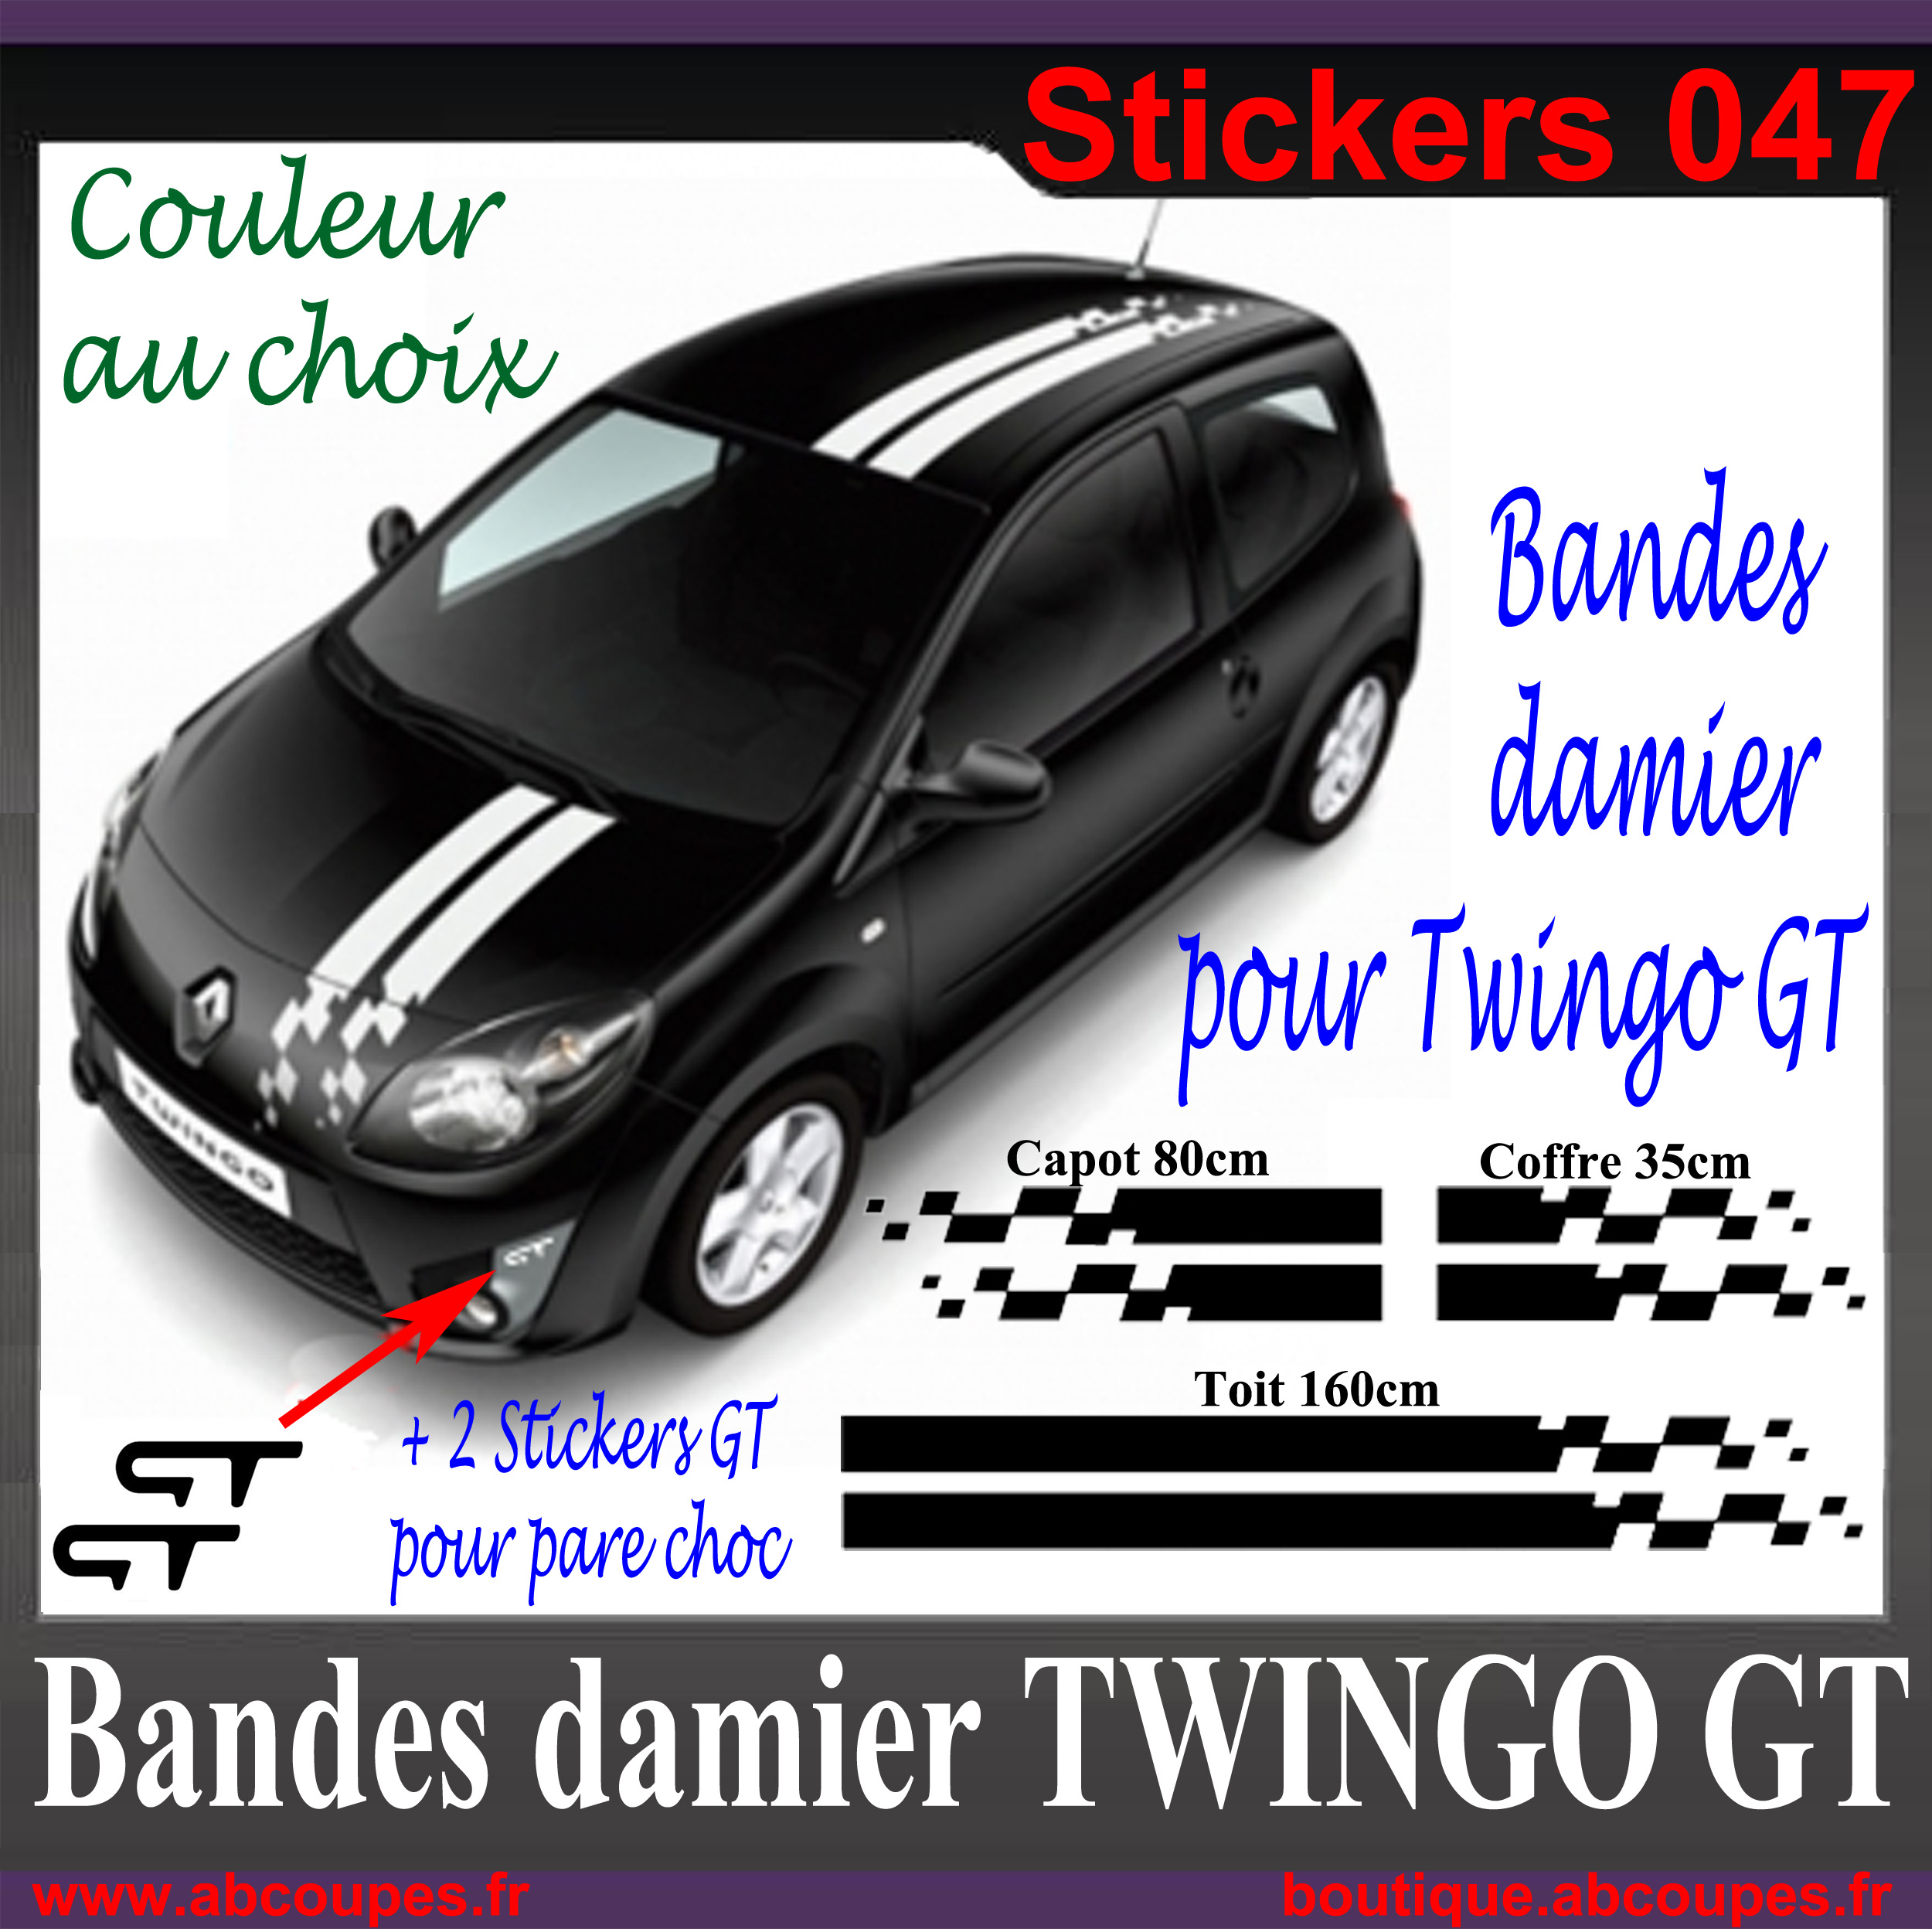 kit bandes damier pour twingo gt 2 stickers pare choc renault sport 047. Black Bedroom Furniture Sets. Home Design Ideas